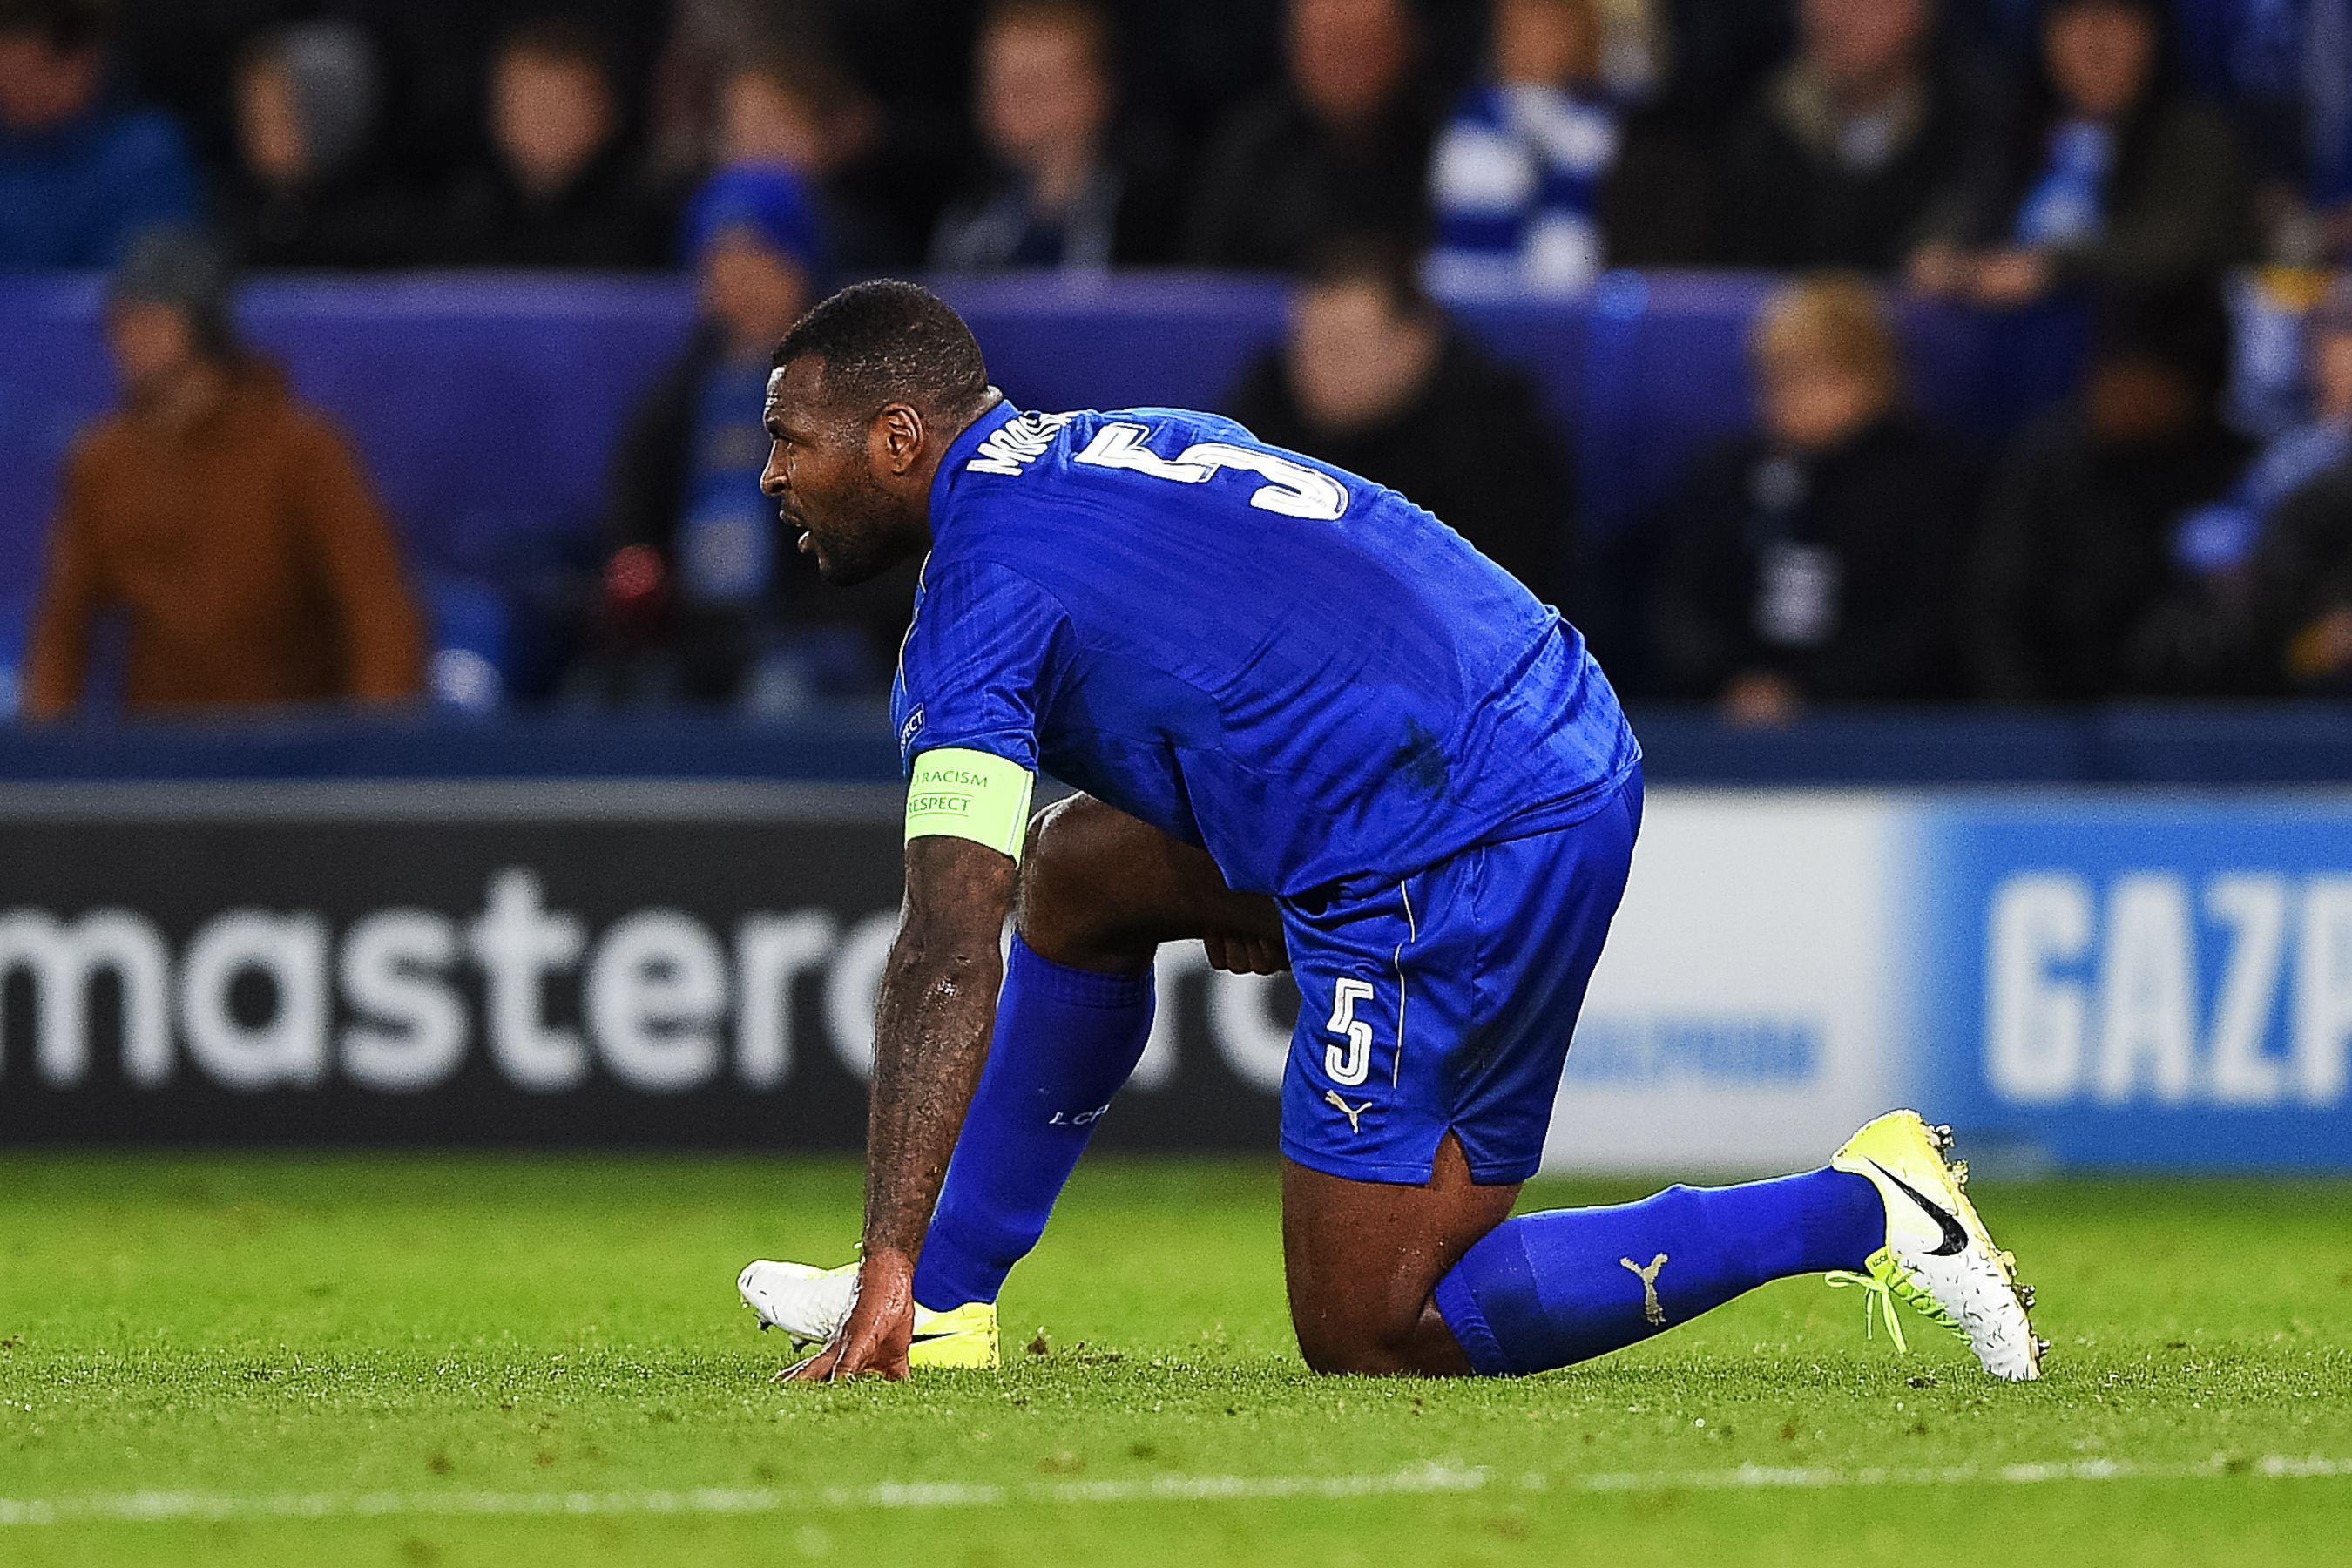 Leicester defenders might be in for a tough day at Man City